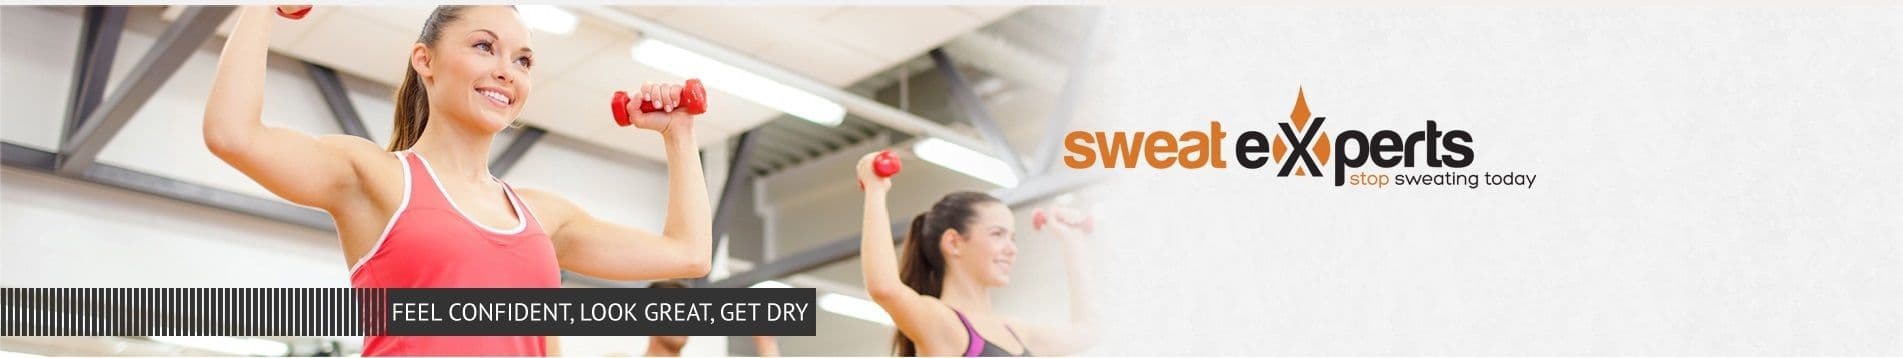 SweatExperts.com - Stop sweating today